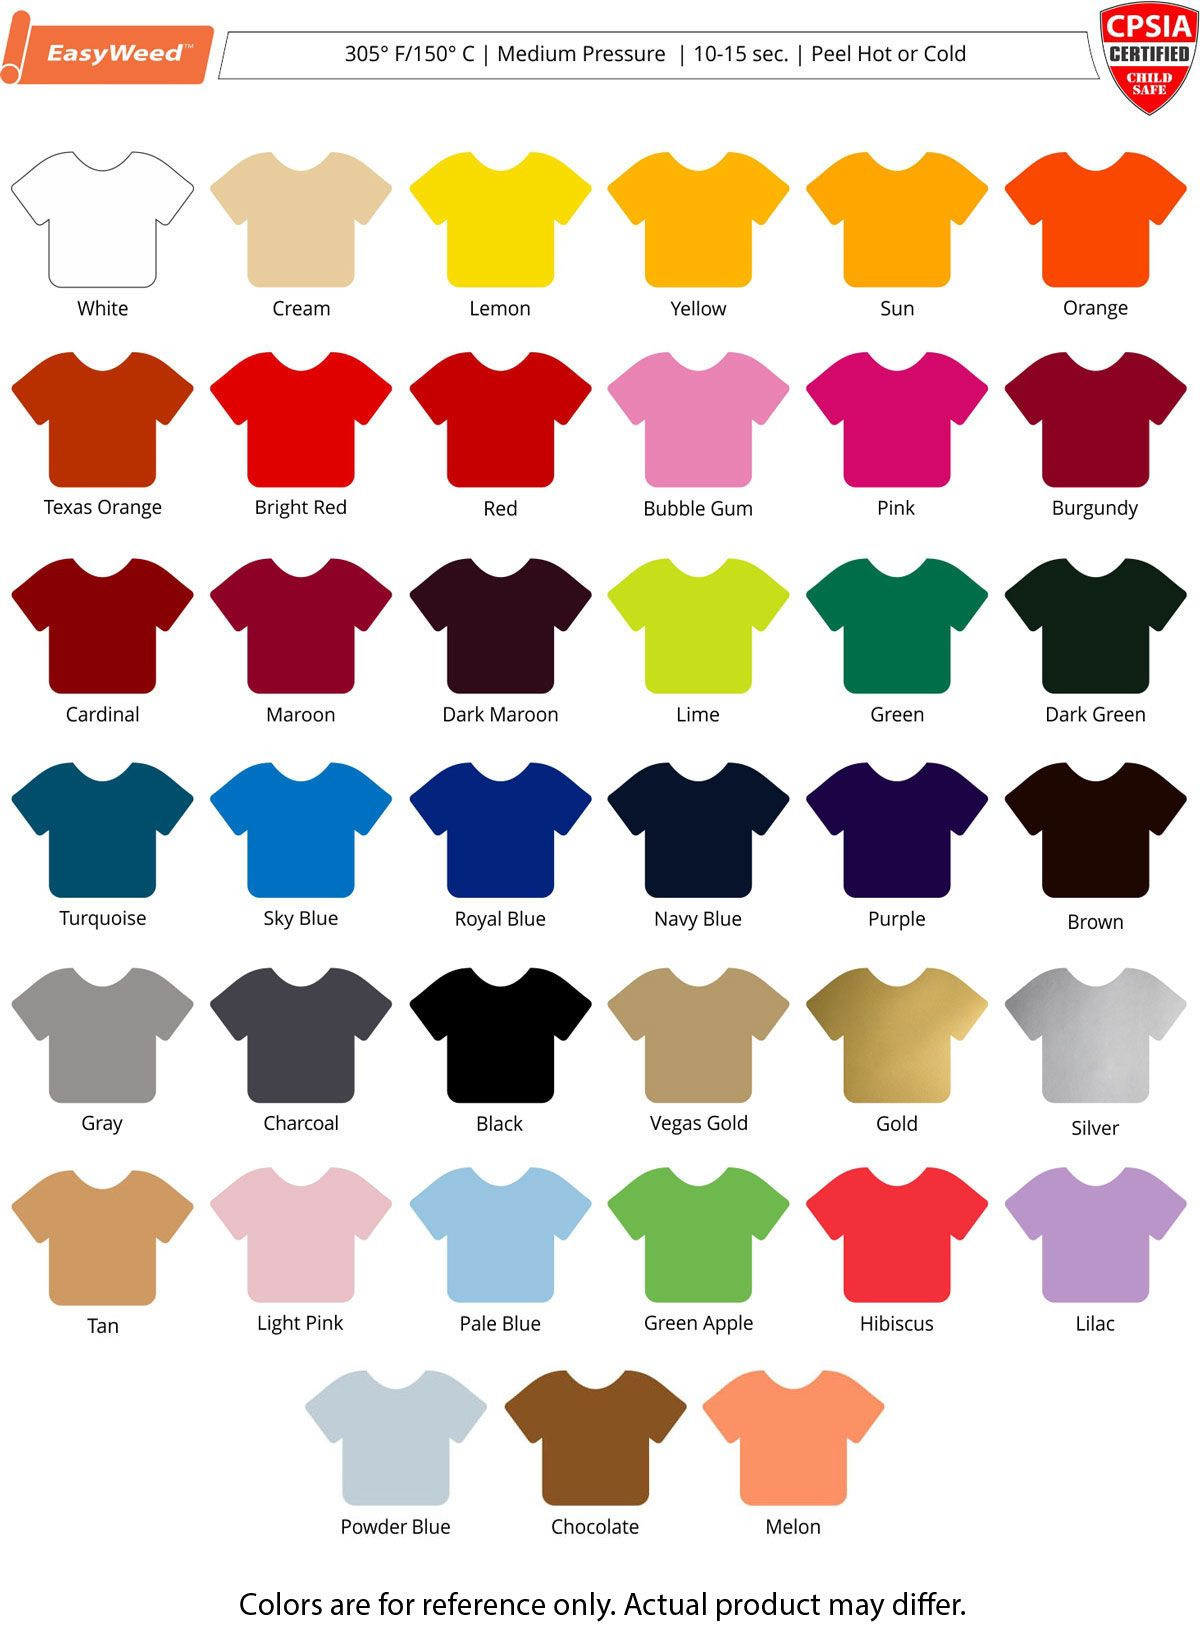 Color Chart Siser Easyweed Heat Transfer Vinyl Silhouette Cricut Explore Projects Charts